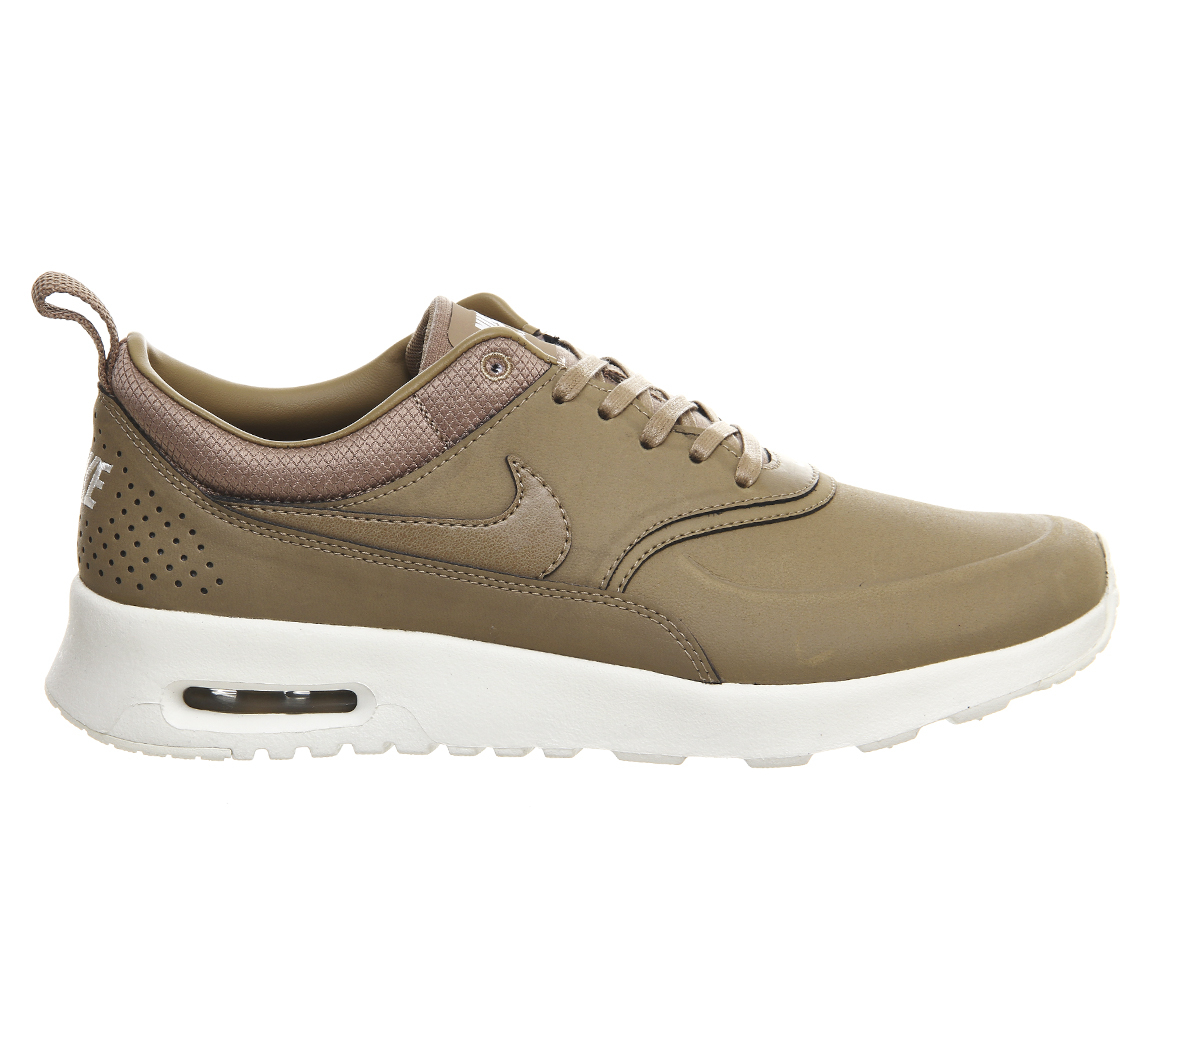 nike air max thea in natural lyst. Black Bedroom Furniture Sets. Home Design Ideas